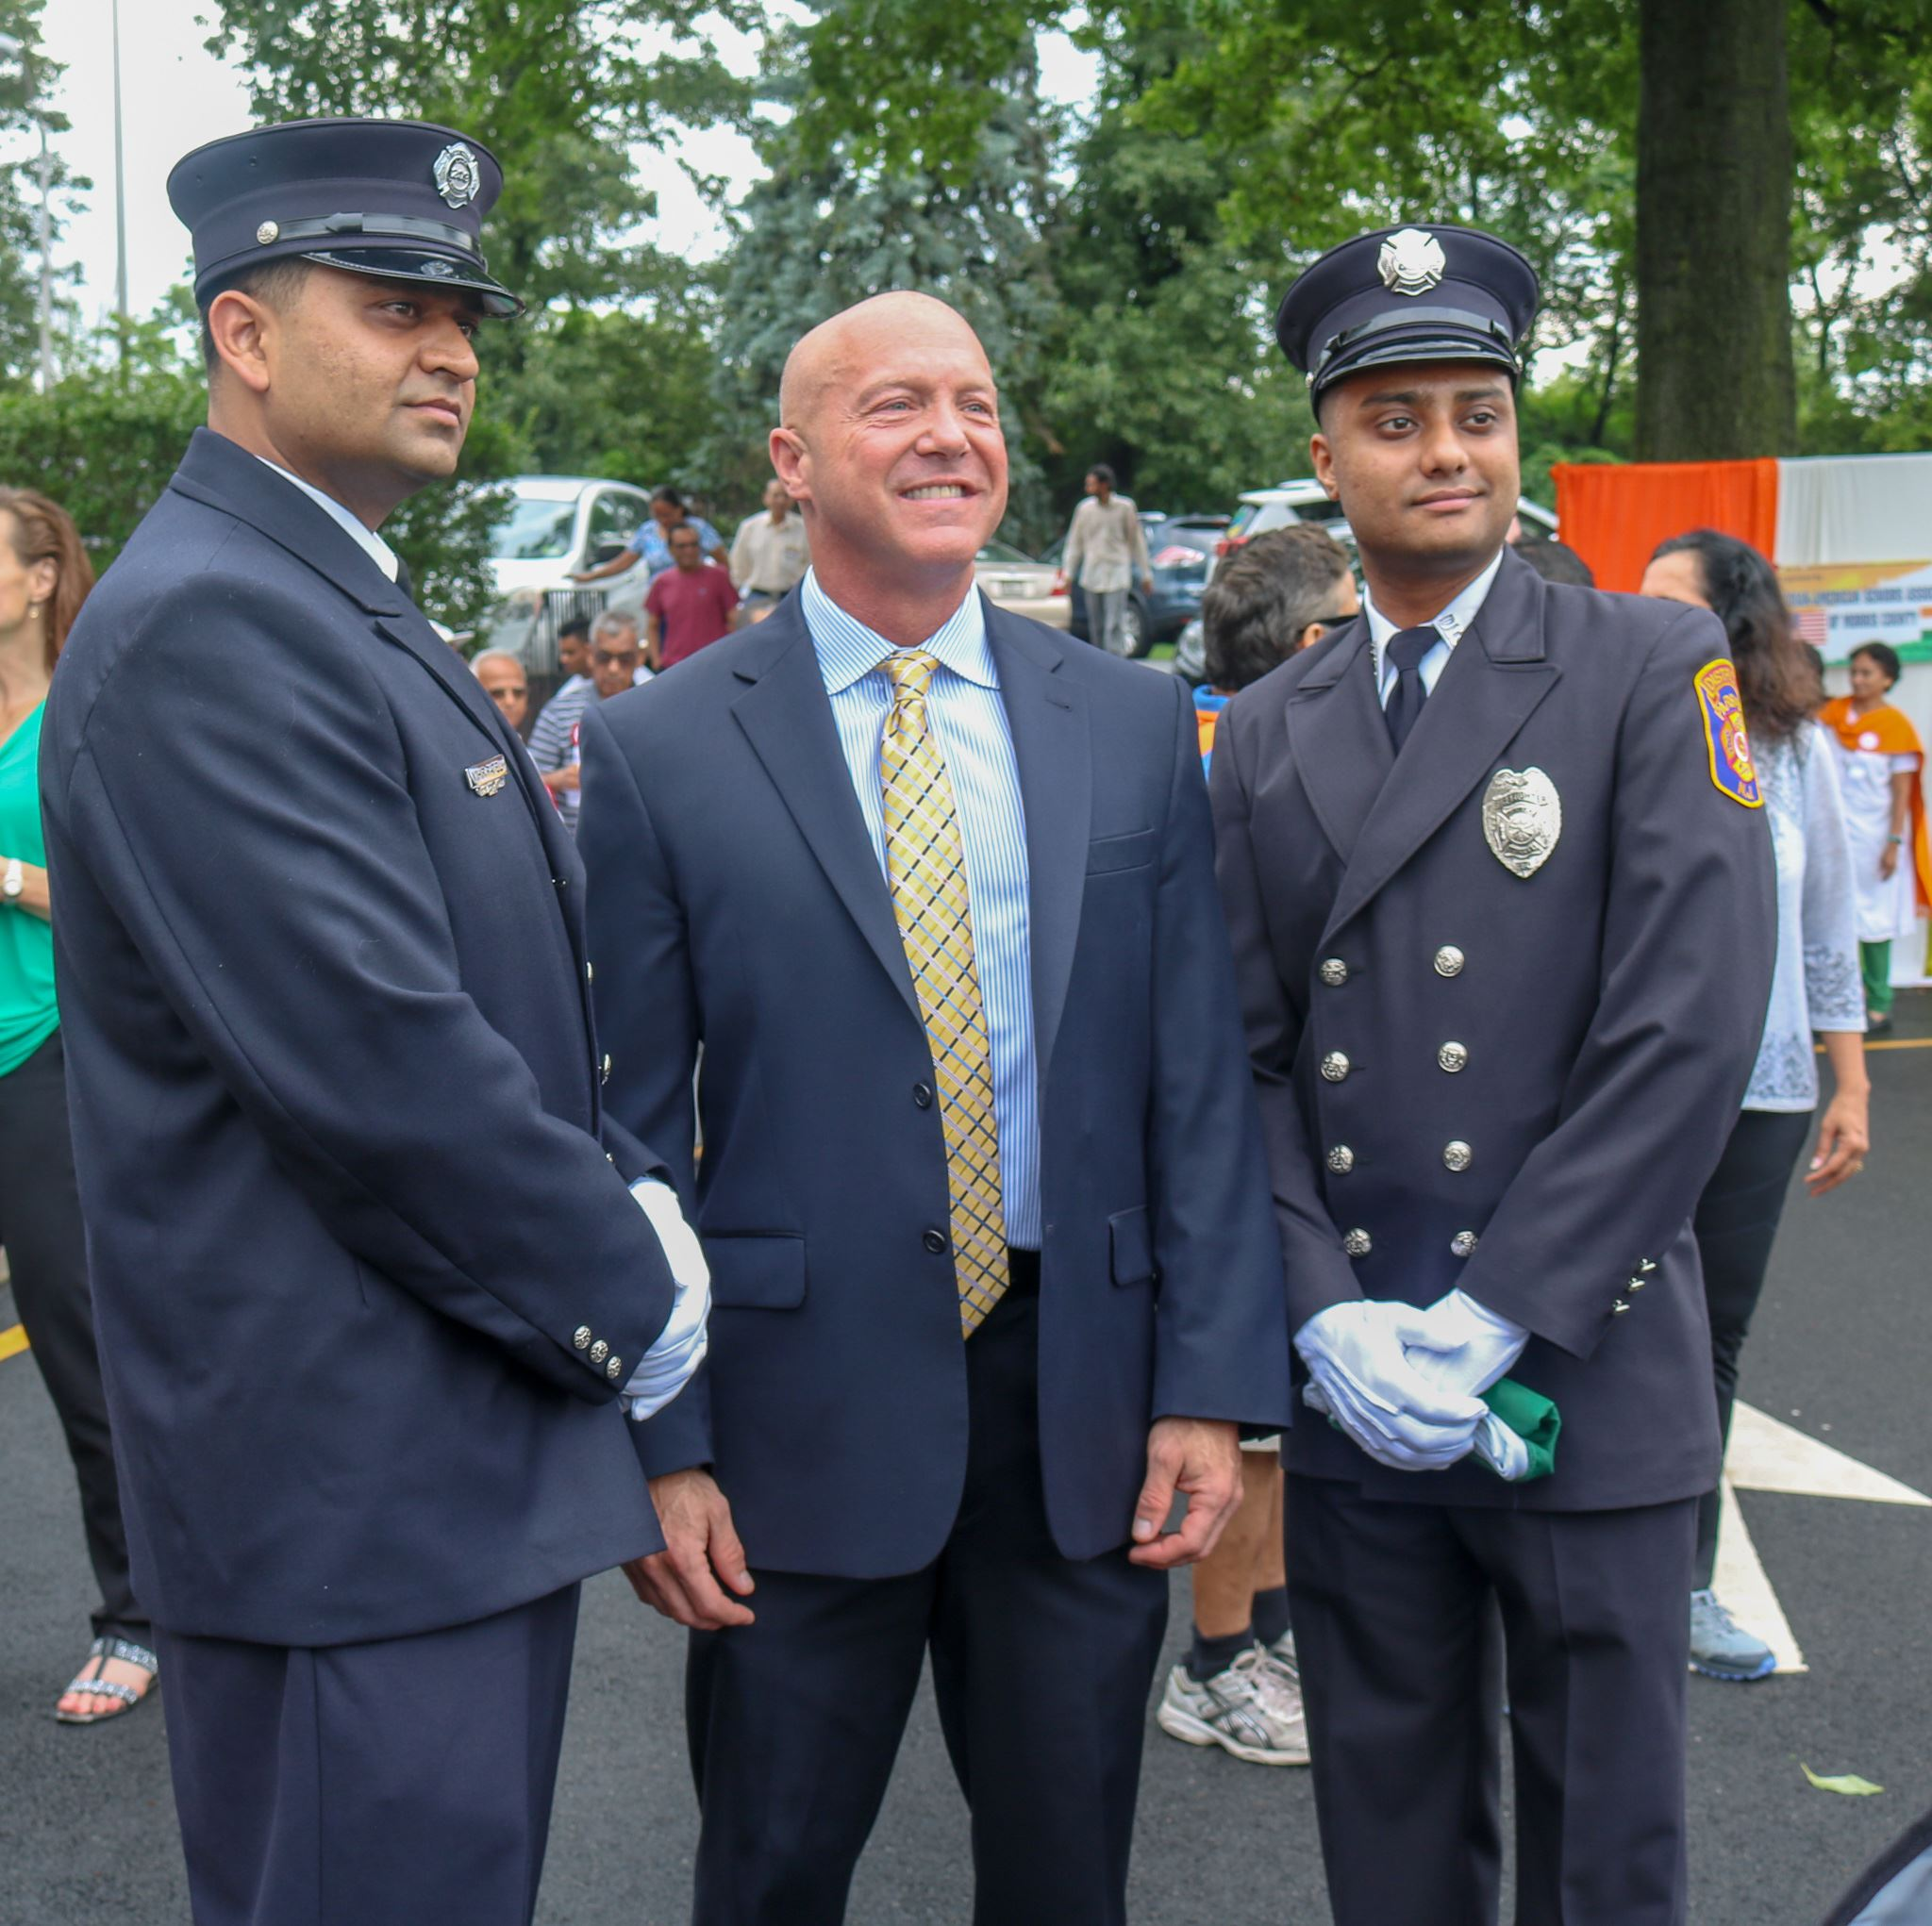 Council President Carifi and two Volunteer Firemen